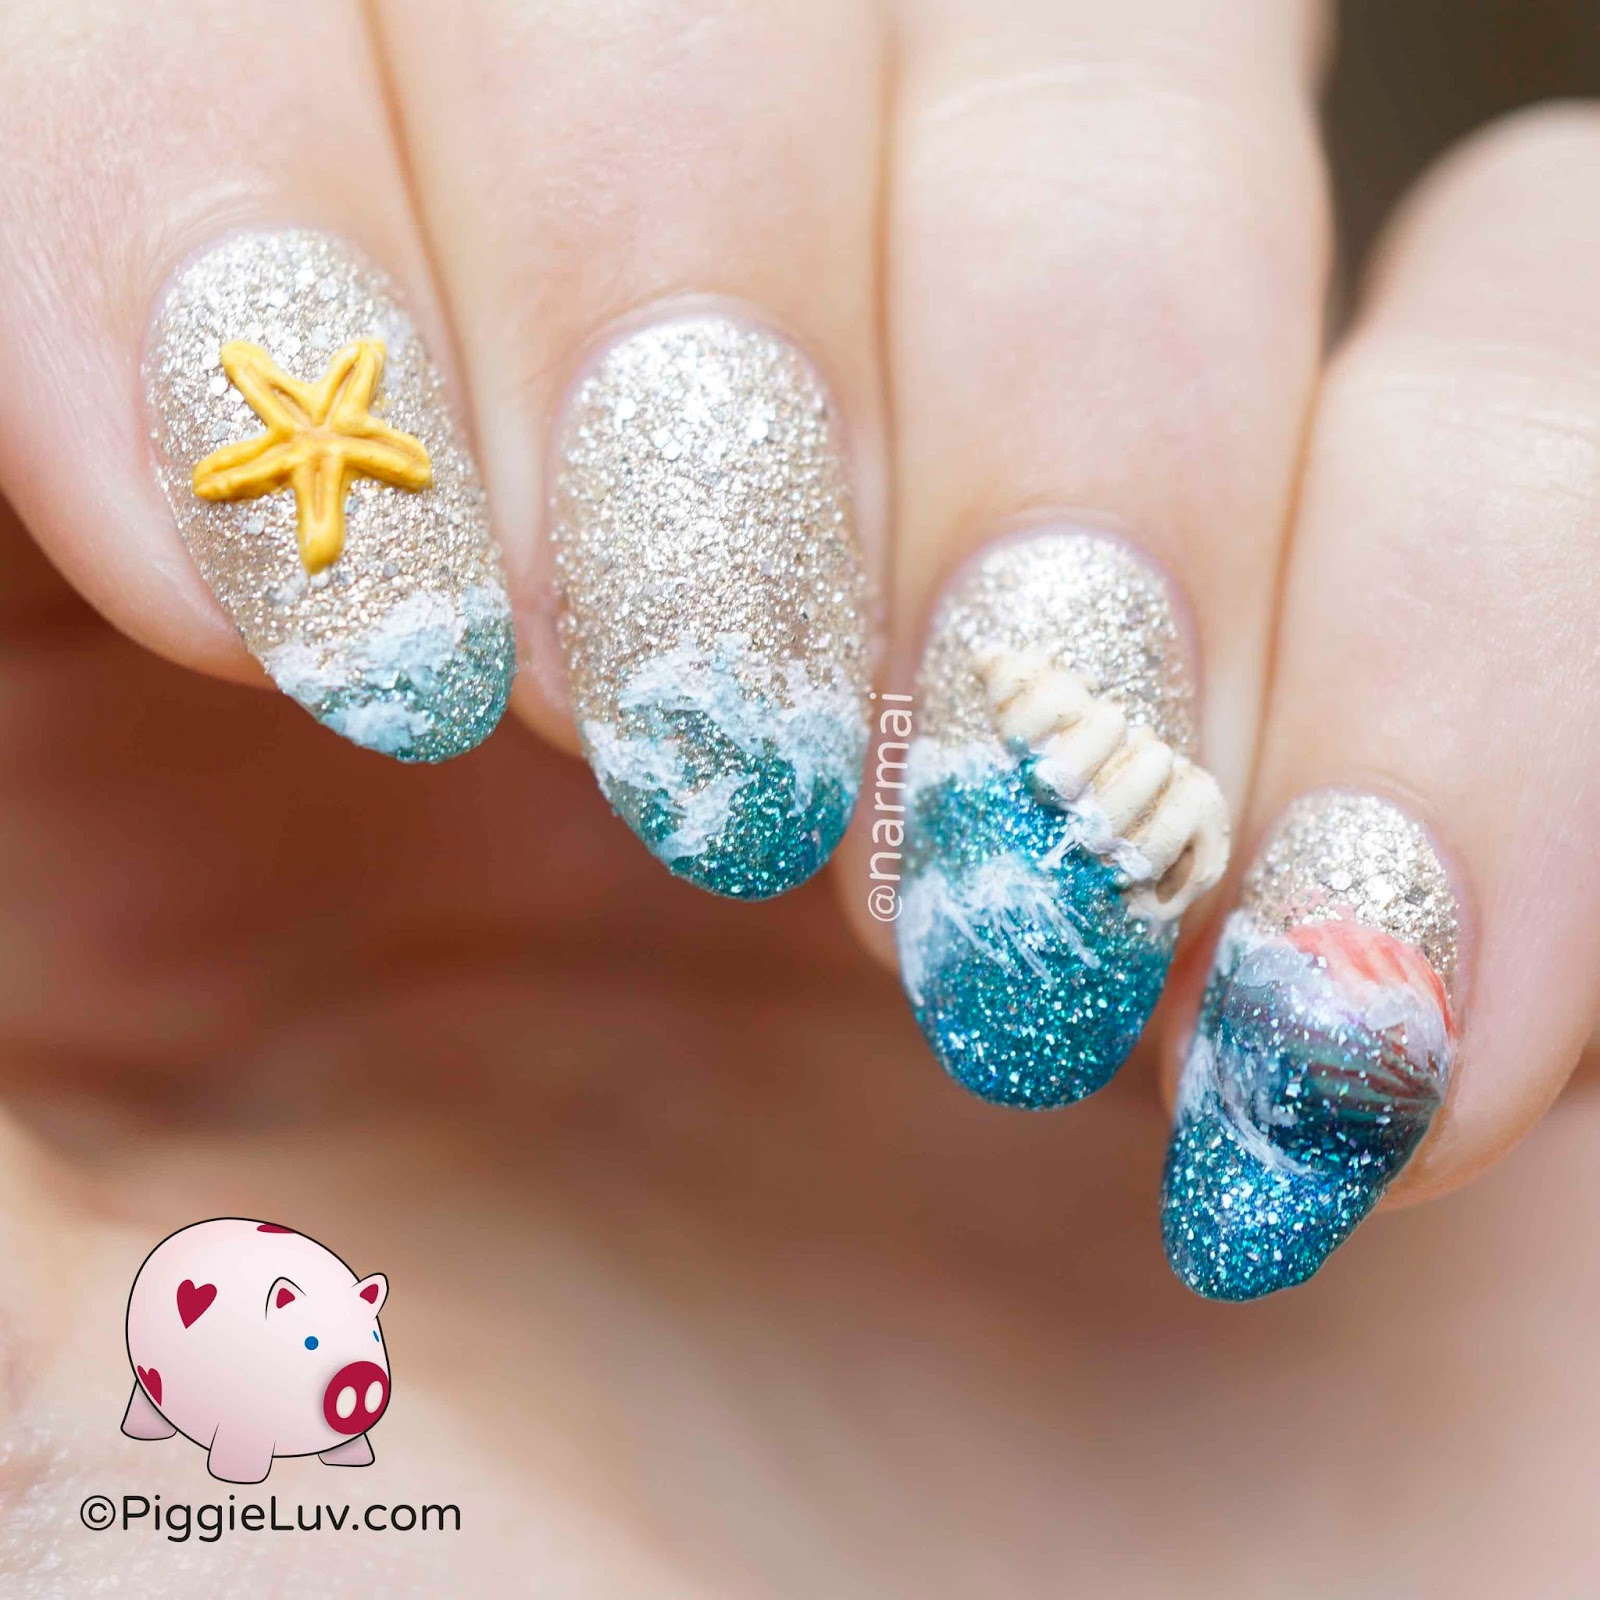 PiggieLuv: Son of a beach nail art